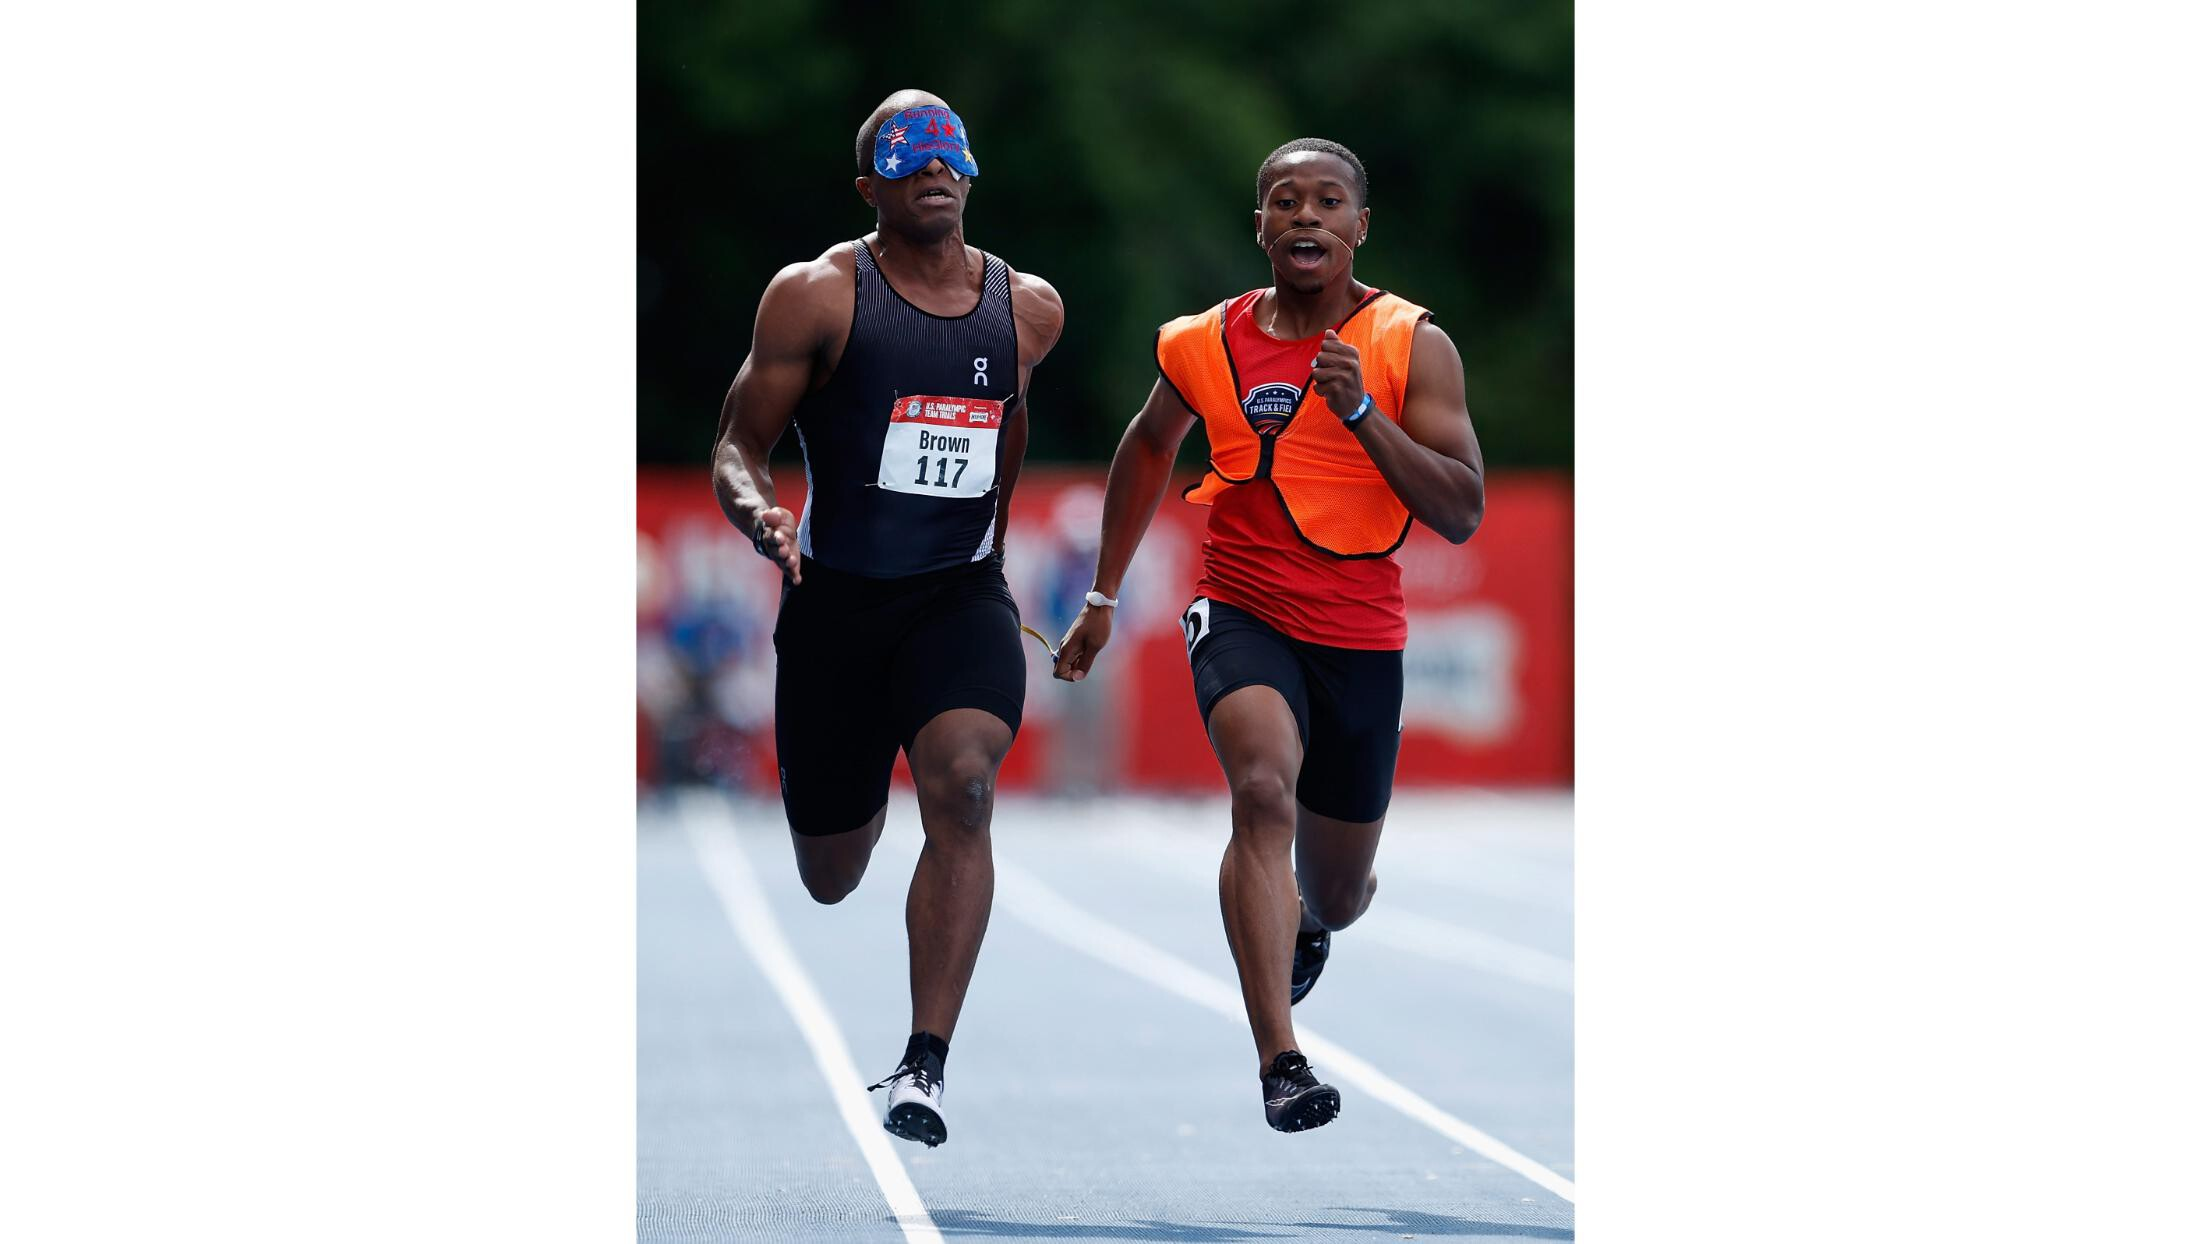 'The possibilities are endless on how fast we can go,' says Paralympian David Brown, the world's fastest blind athlete